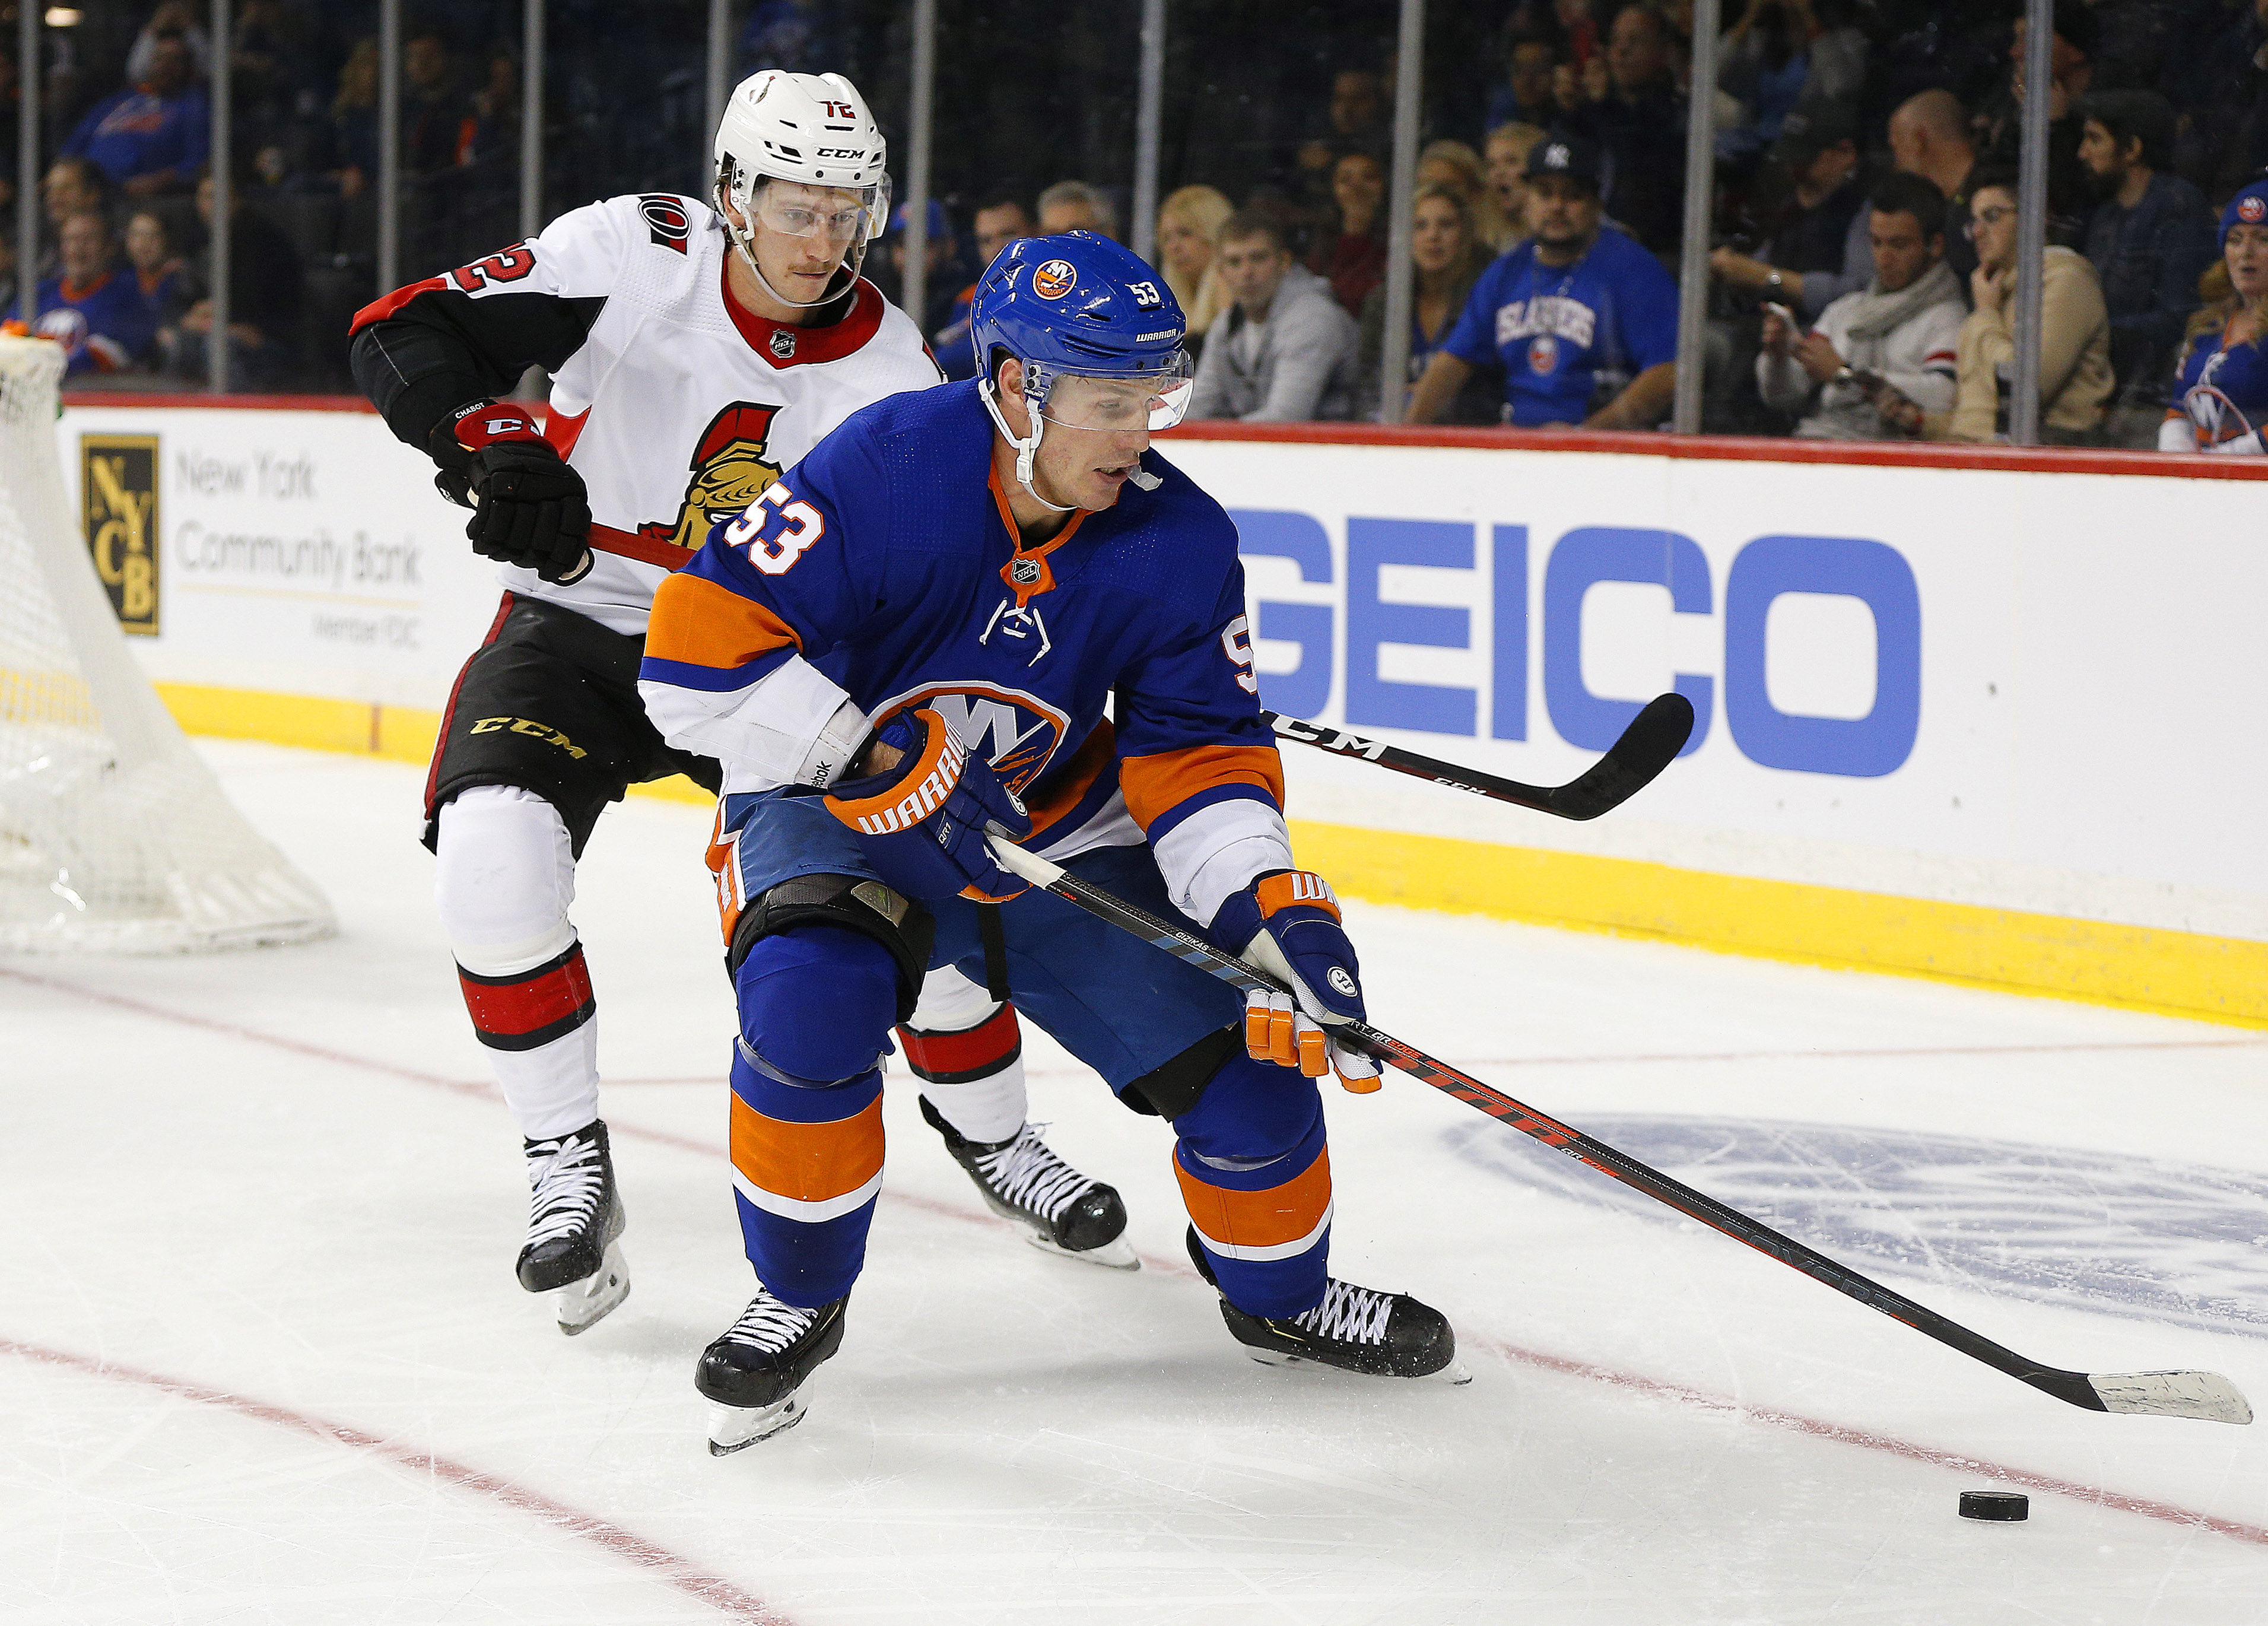 Nov 5, 2019; Brooklyn, NY, USA; New York Islanders center Casey Cizikas (53) plays the puck while being defended by Ottawa Senators defenseman Thomas Chabot (72) during the second period at Barclays Center. Mandatory Credit: Andy Marlin-USA TODAY Sports